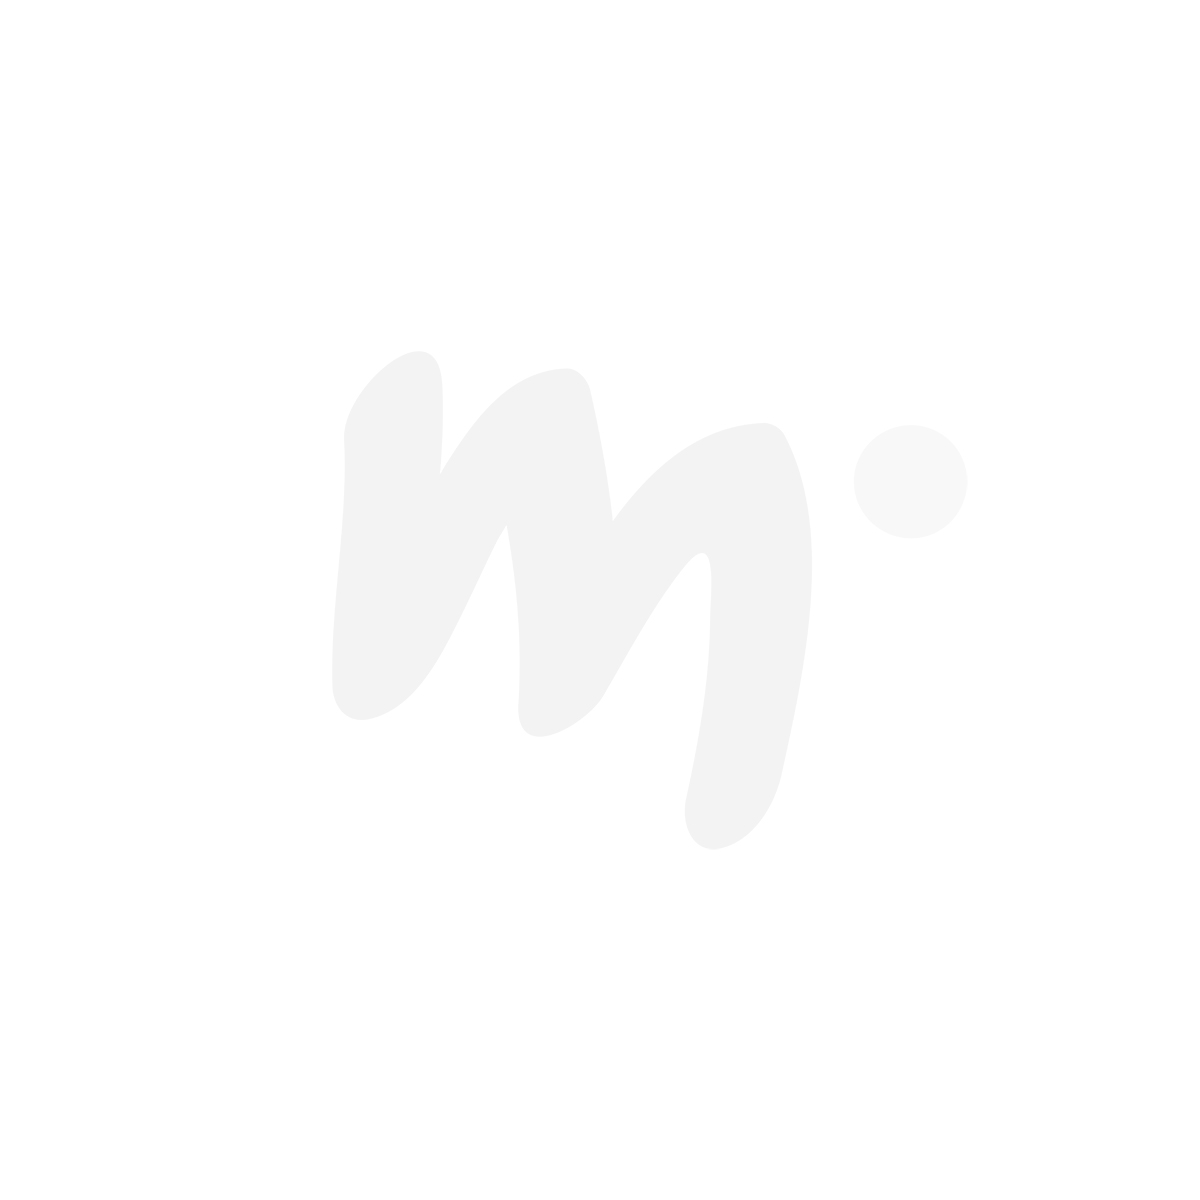 Moomin Characters Square Tins (Set of 3)